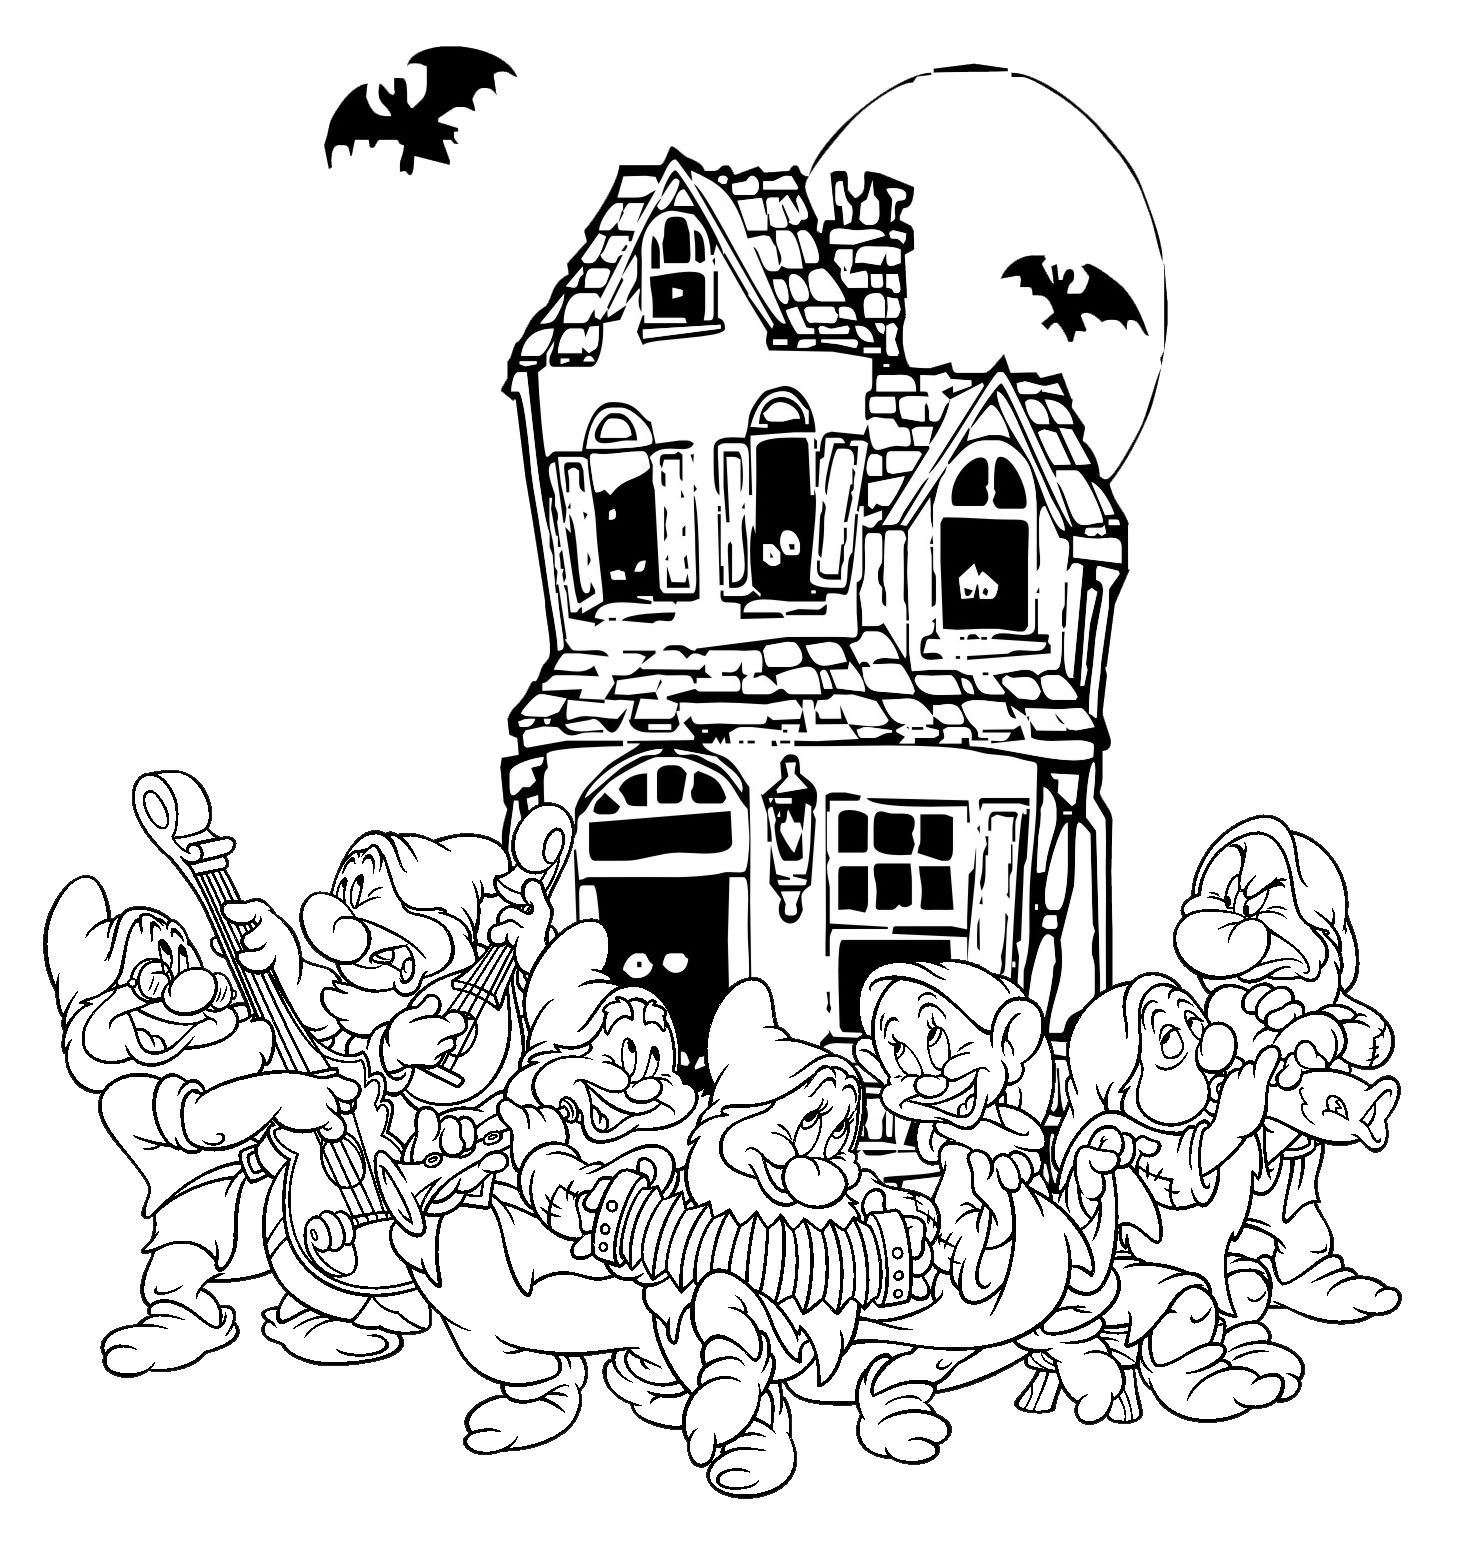 Halloween coloring printables disney - Disney Coloring Pages Snow White Seven Dwarfs Halloween Coloring Page